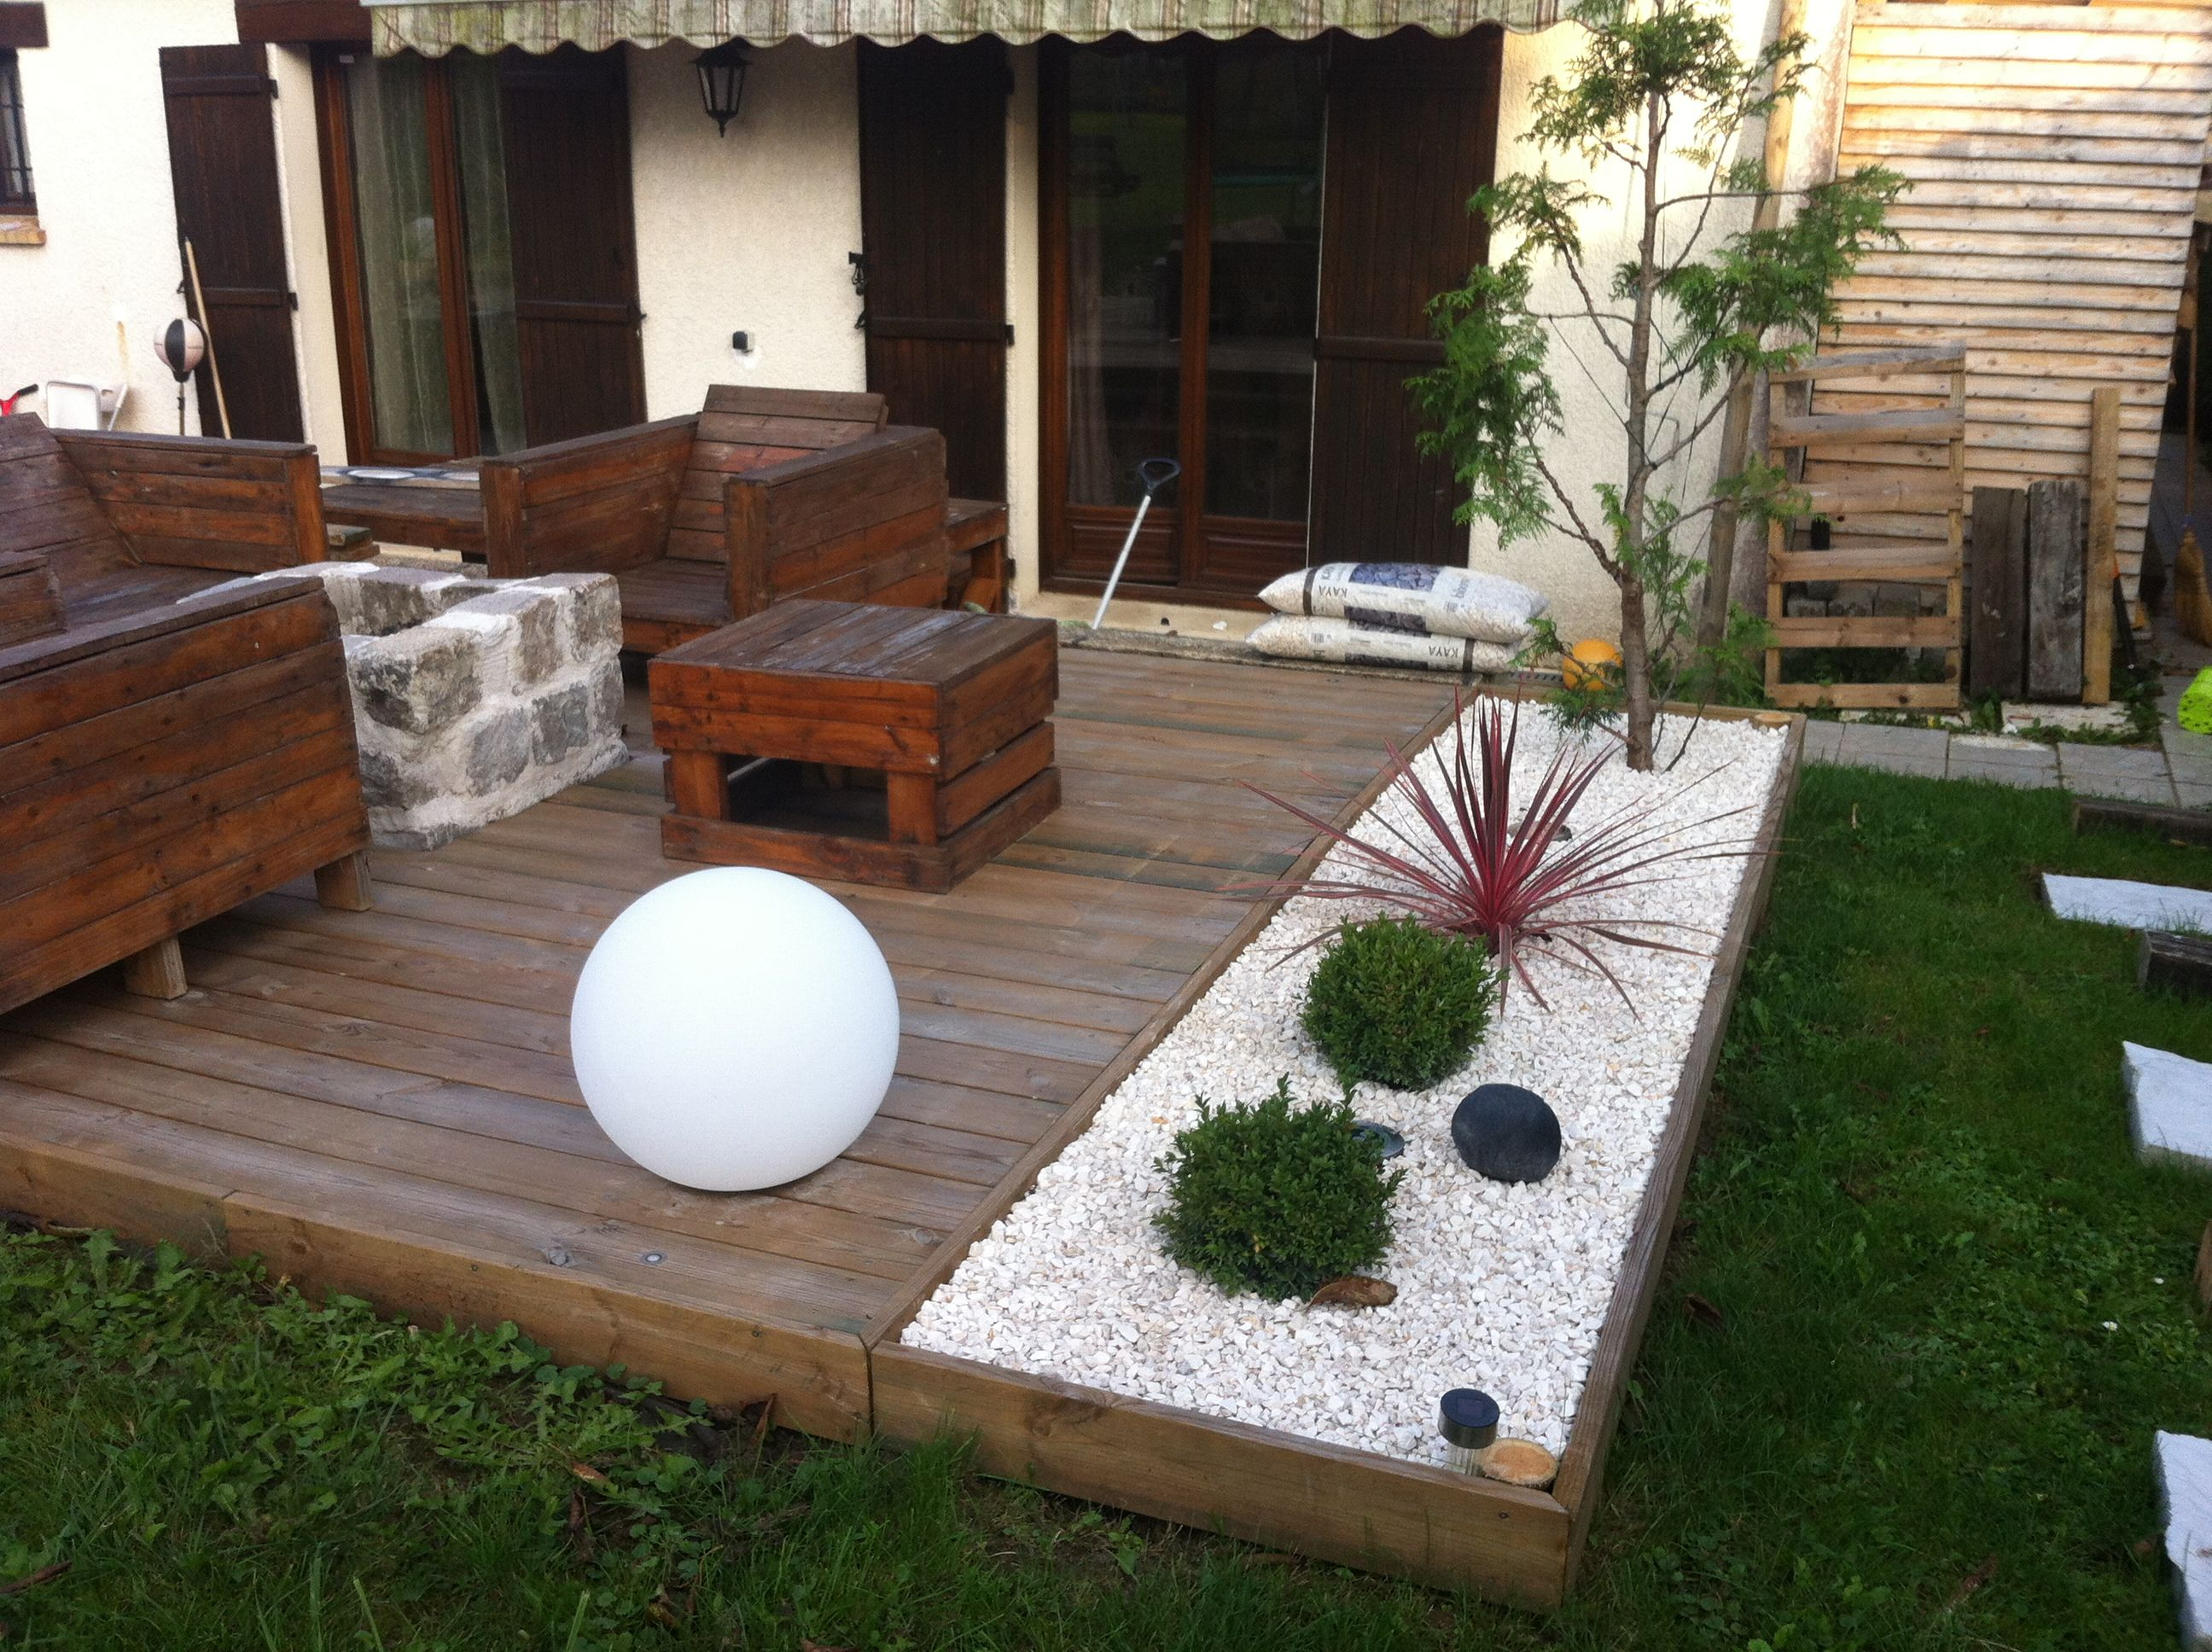 Am nagement d 39 une terrasse brasero instructions for Jardin deco